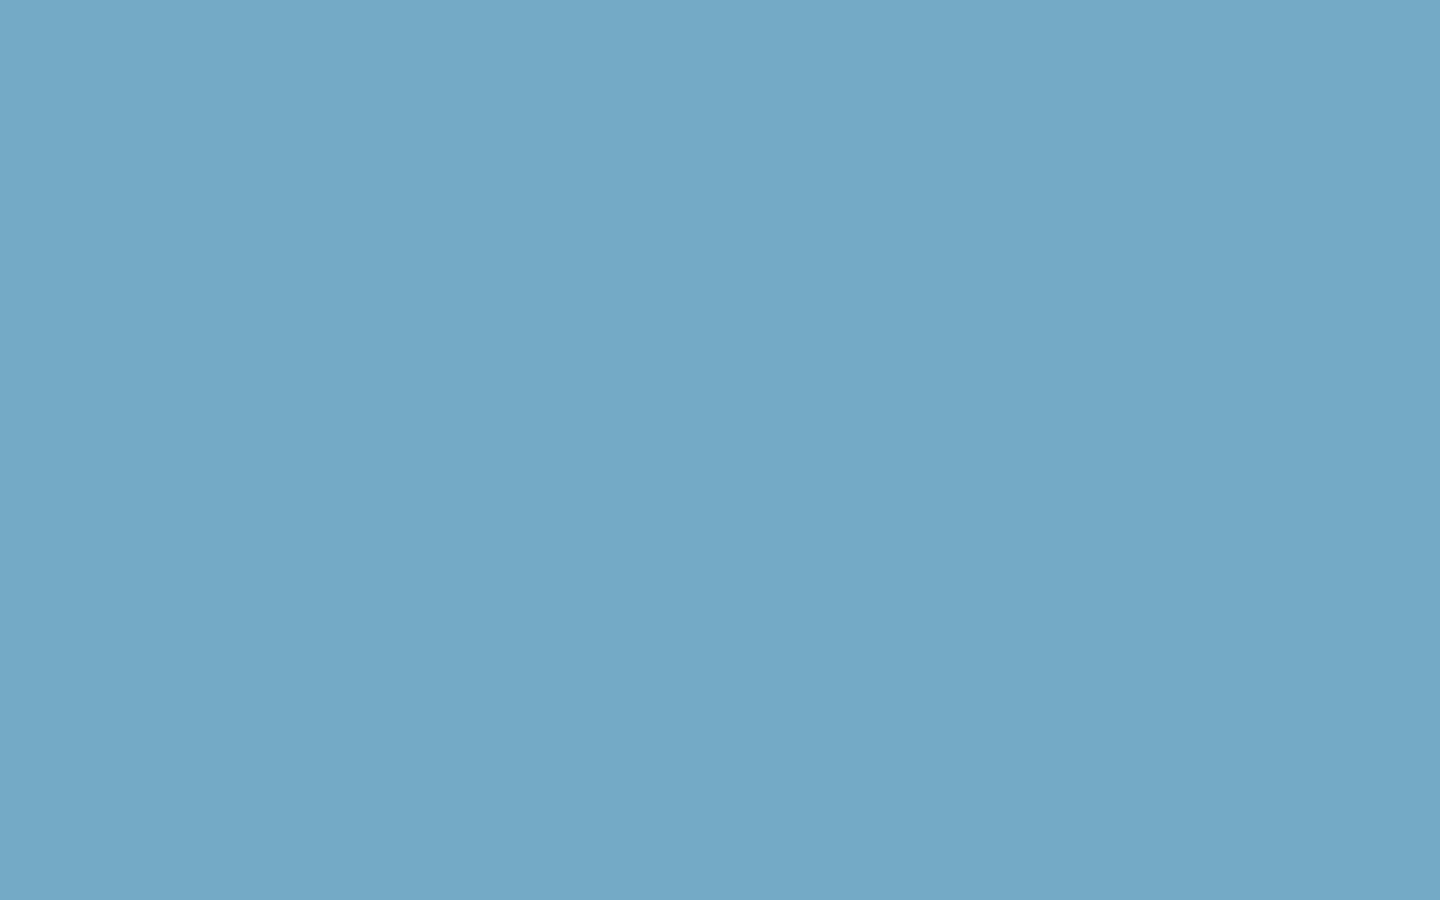 1440x900 Moonstone Blue Solid Color Background